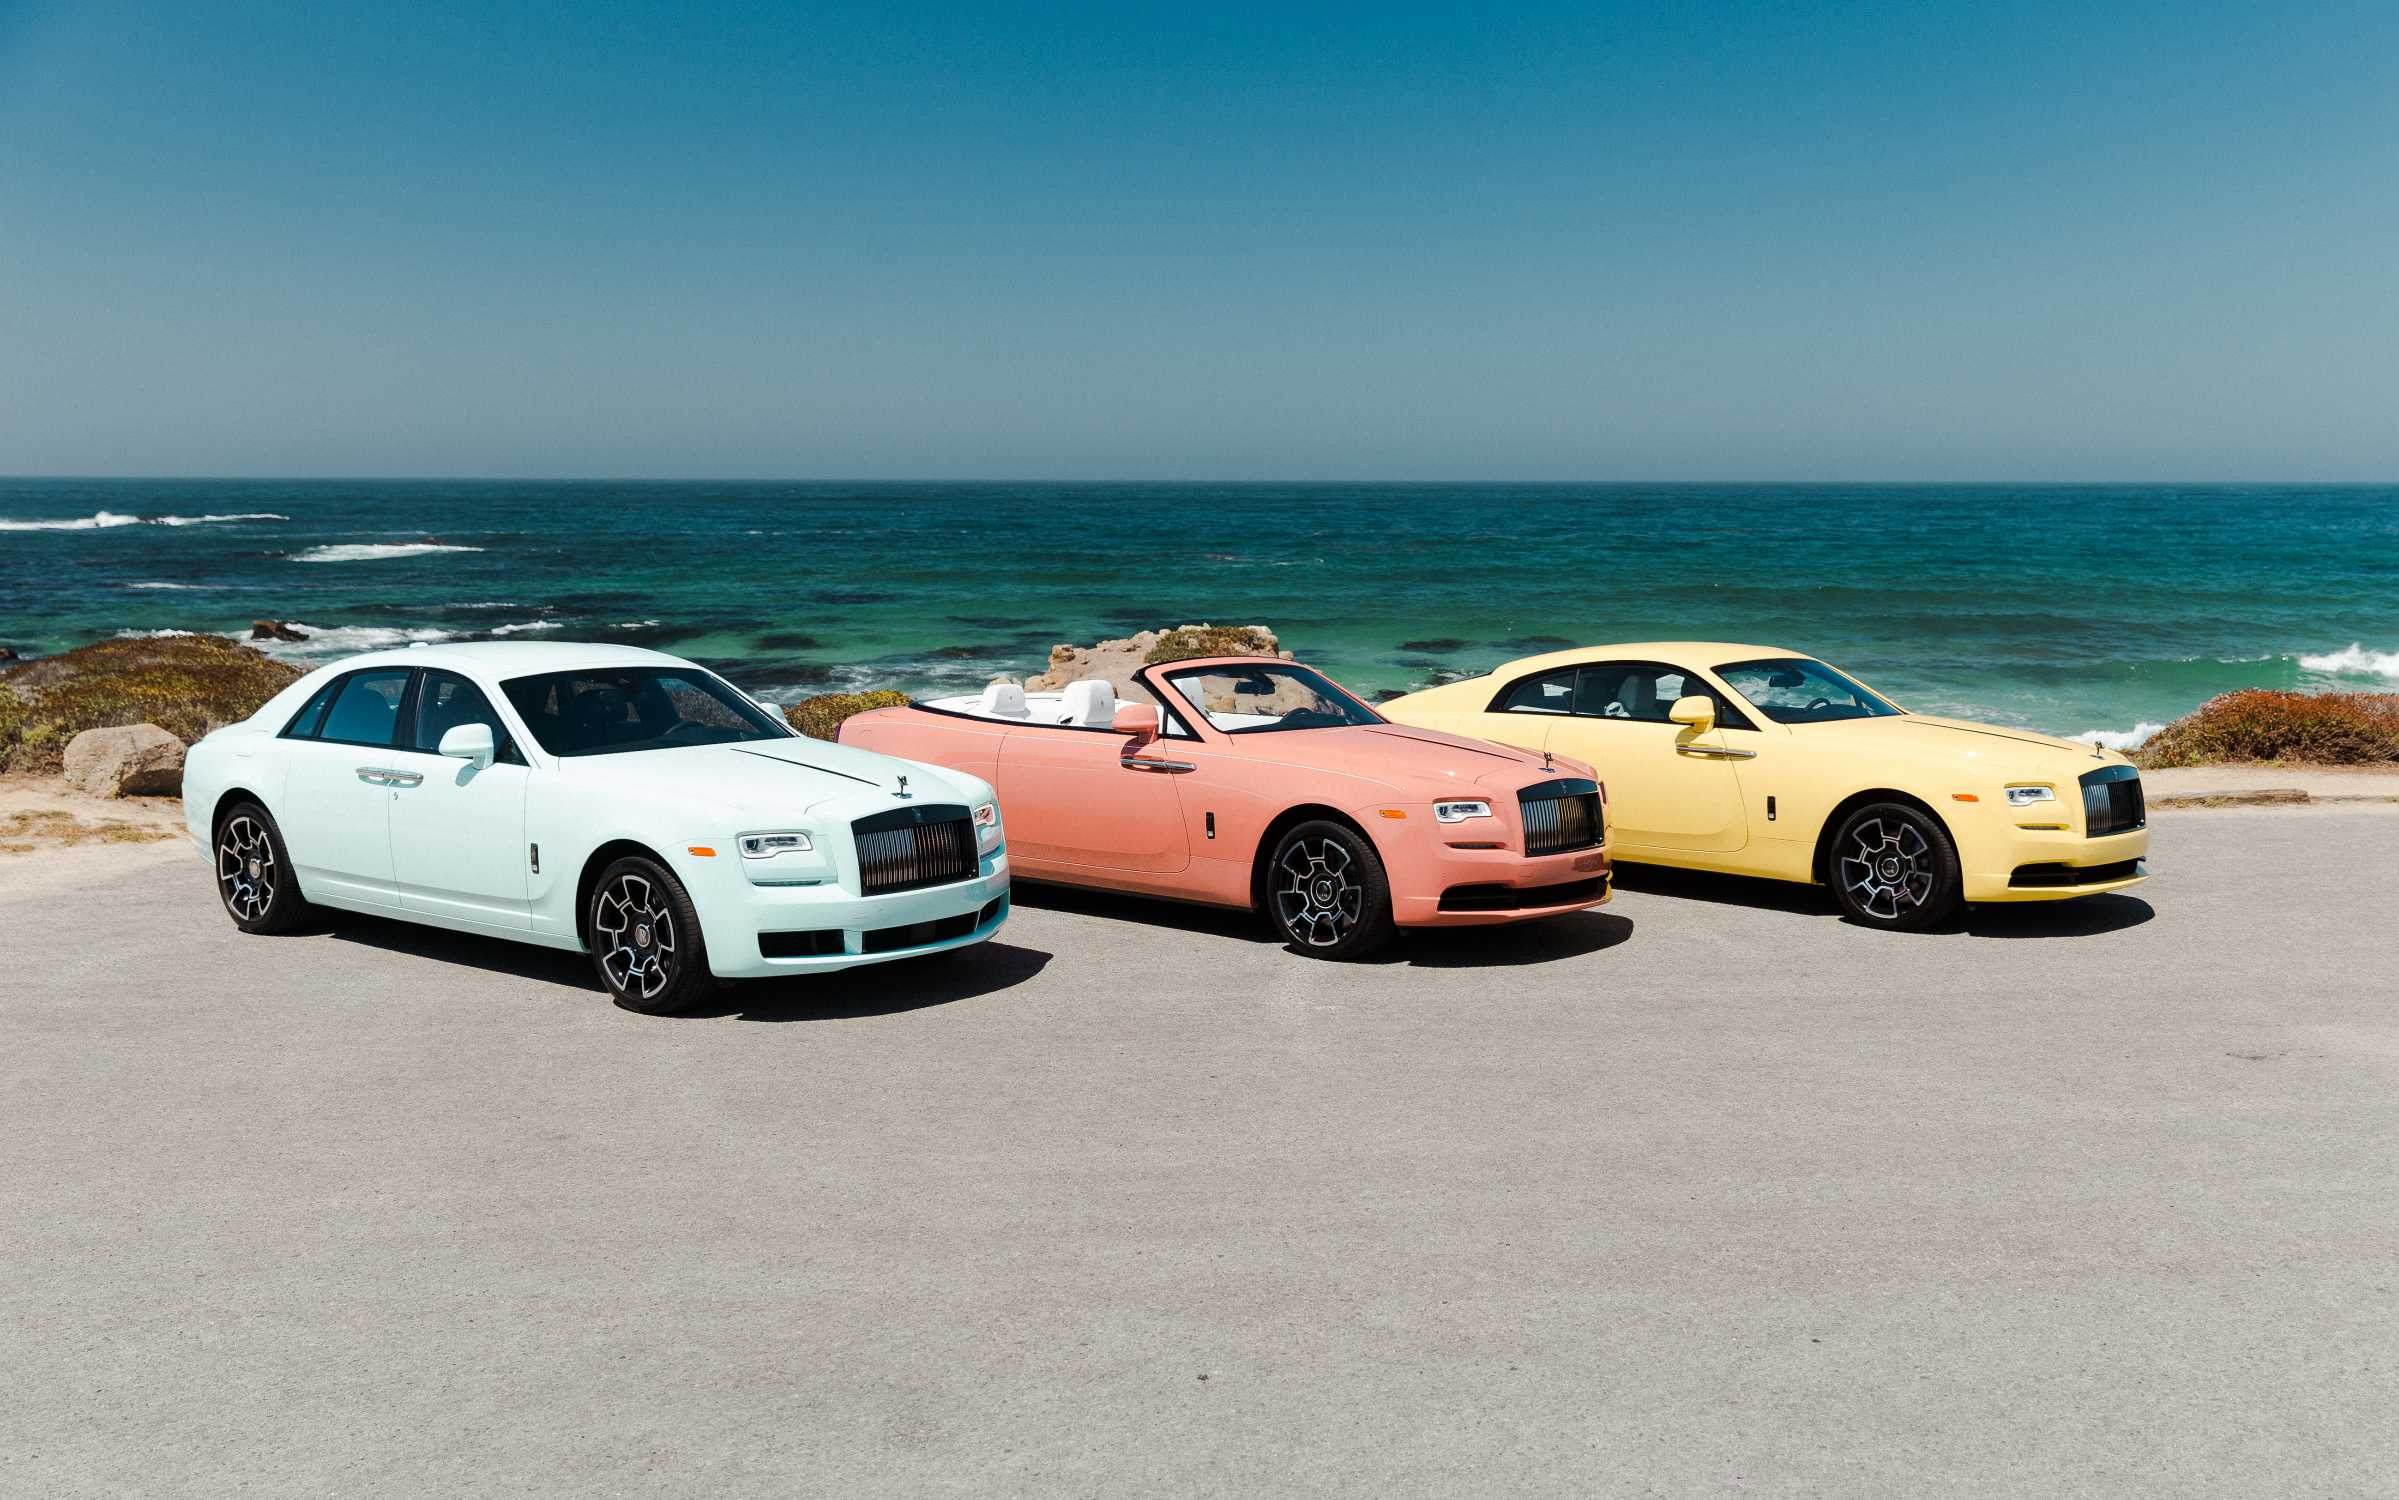 Rolls Royce Pebble Beach 2019 Collection Brings An Explosion Of Colour To Monterey Car Week